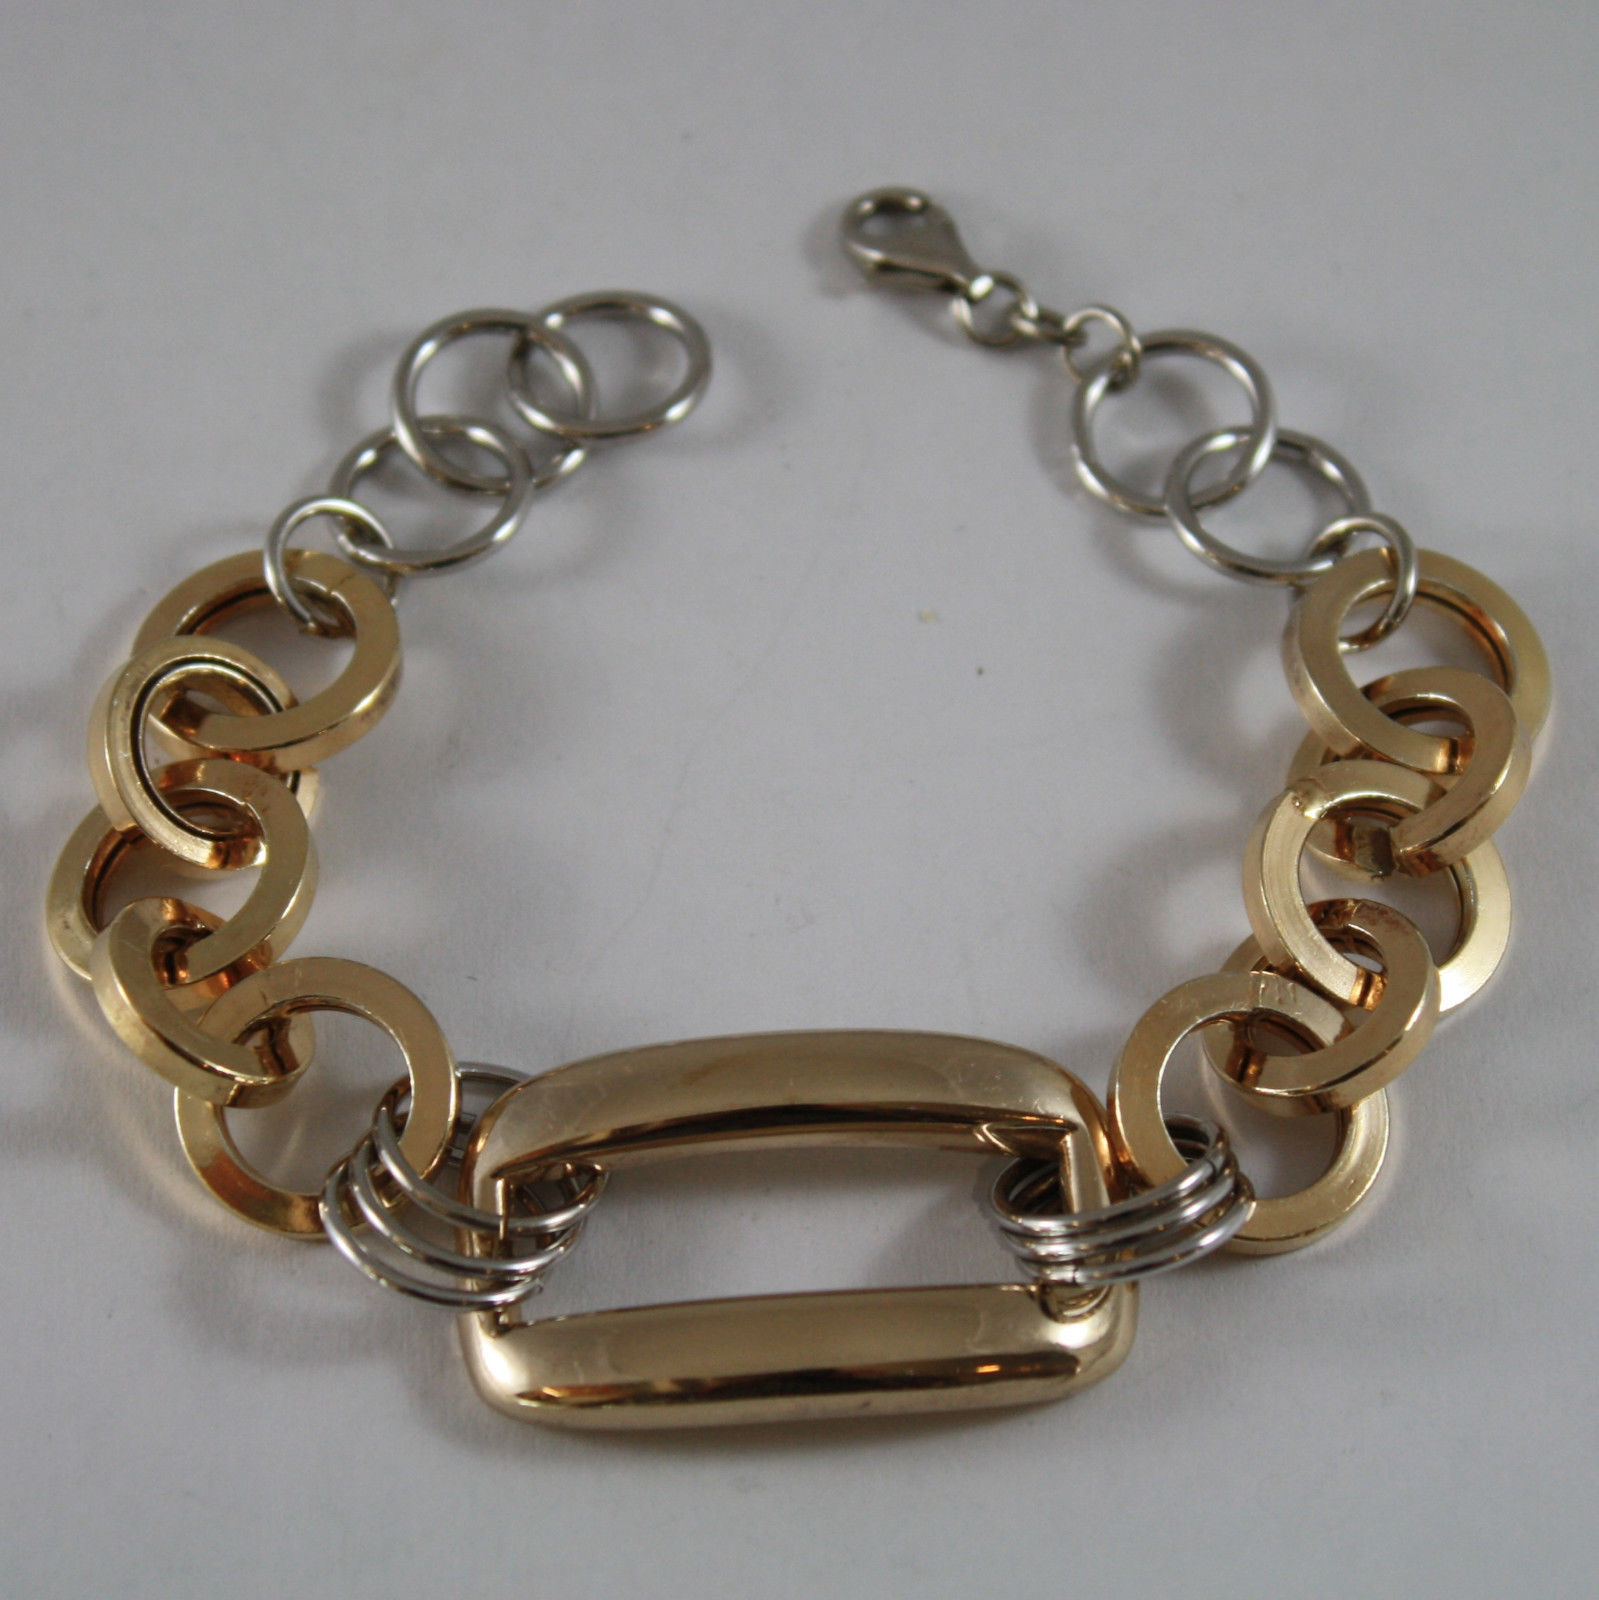 .925 RHODIUM SILVER AND YELLOW GOLD PLATED BRACELET WITH CIRCLES AND RECTANGLE